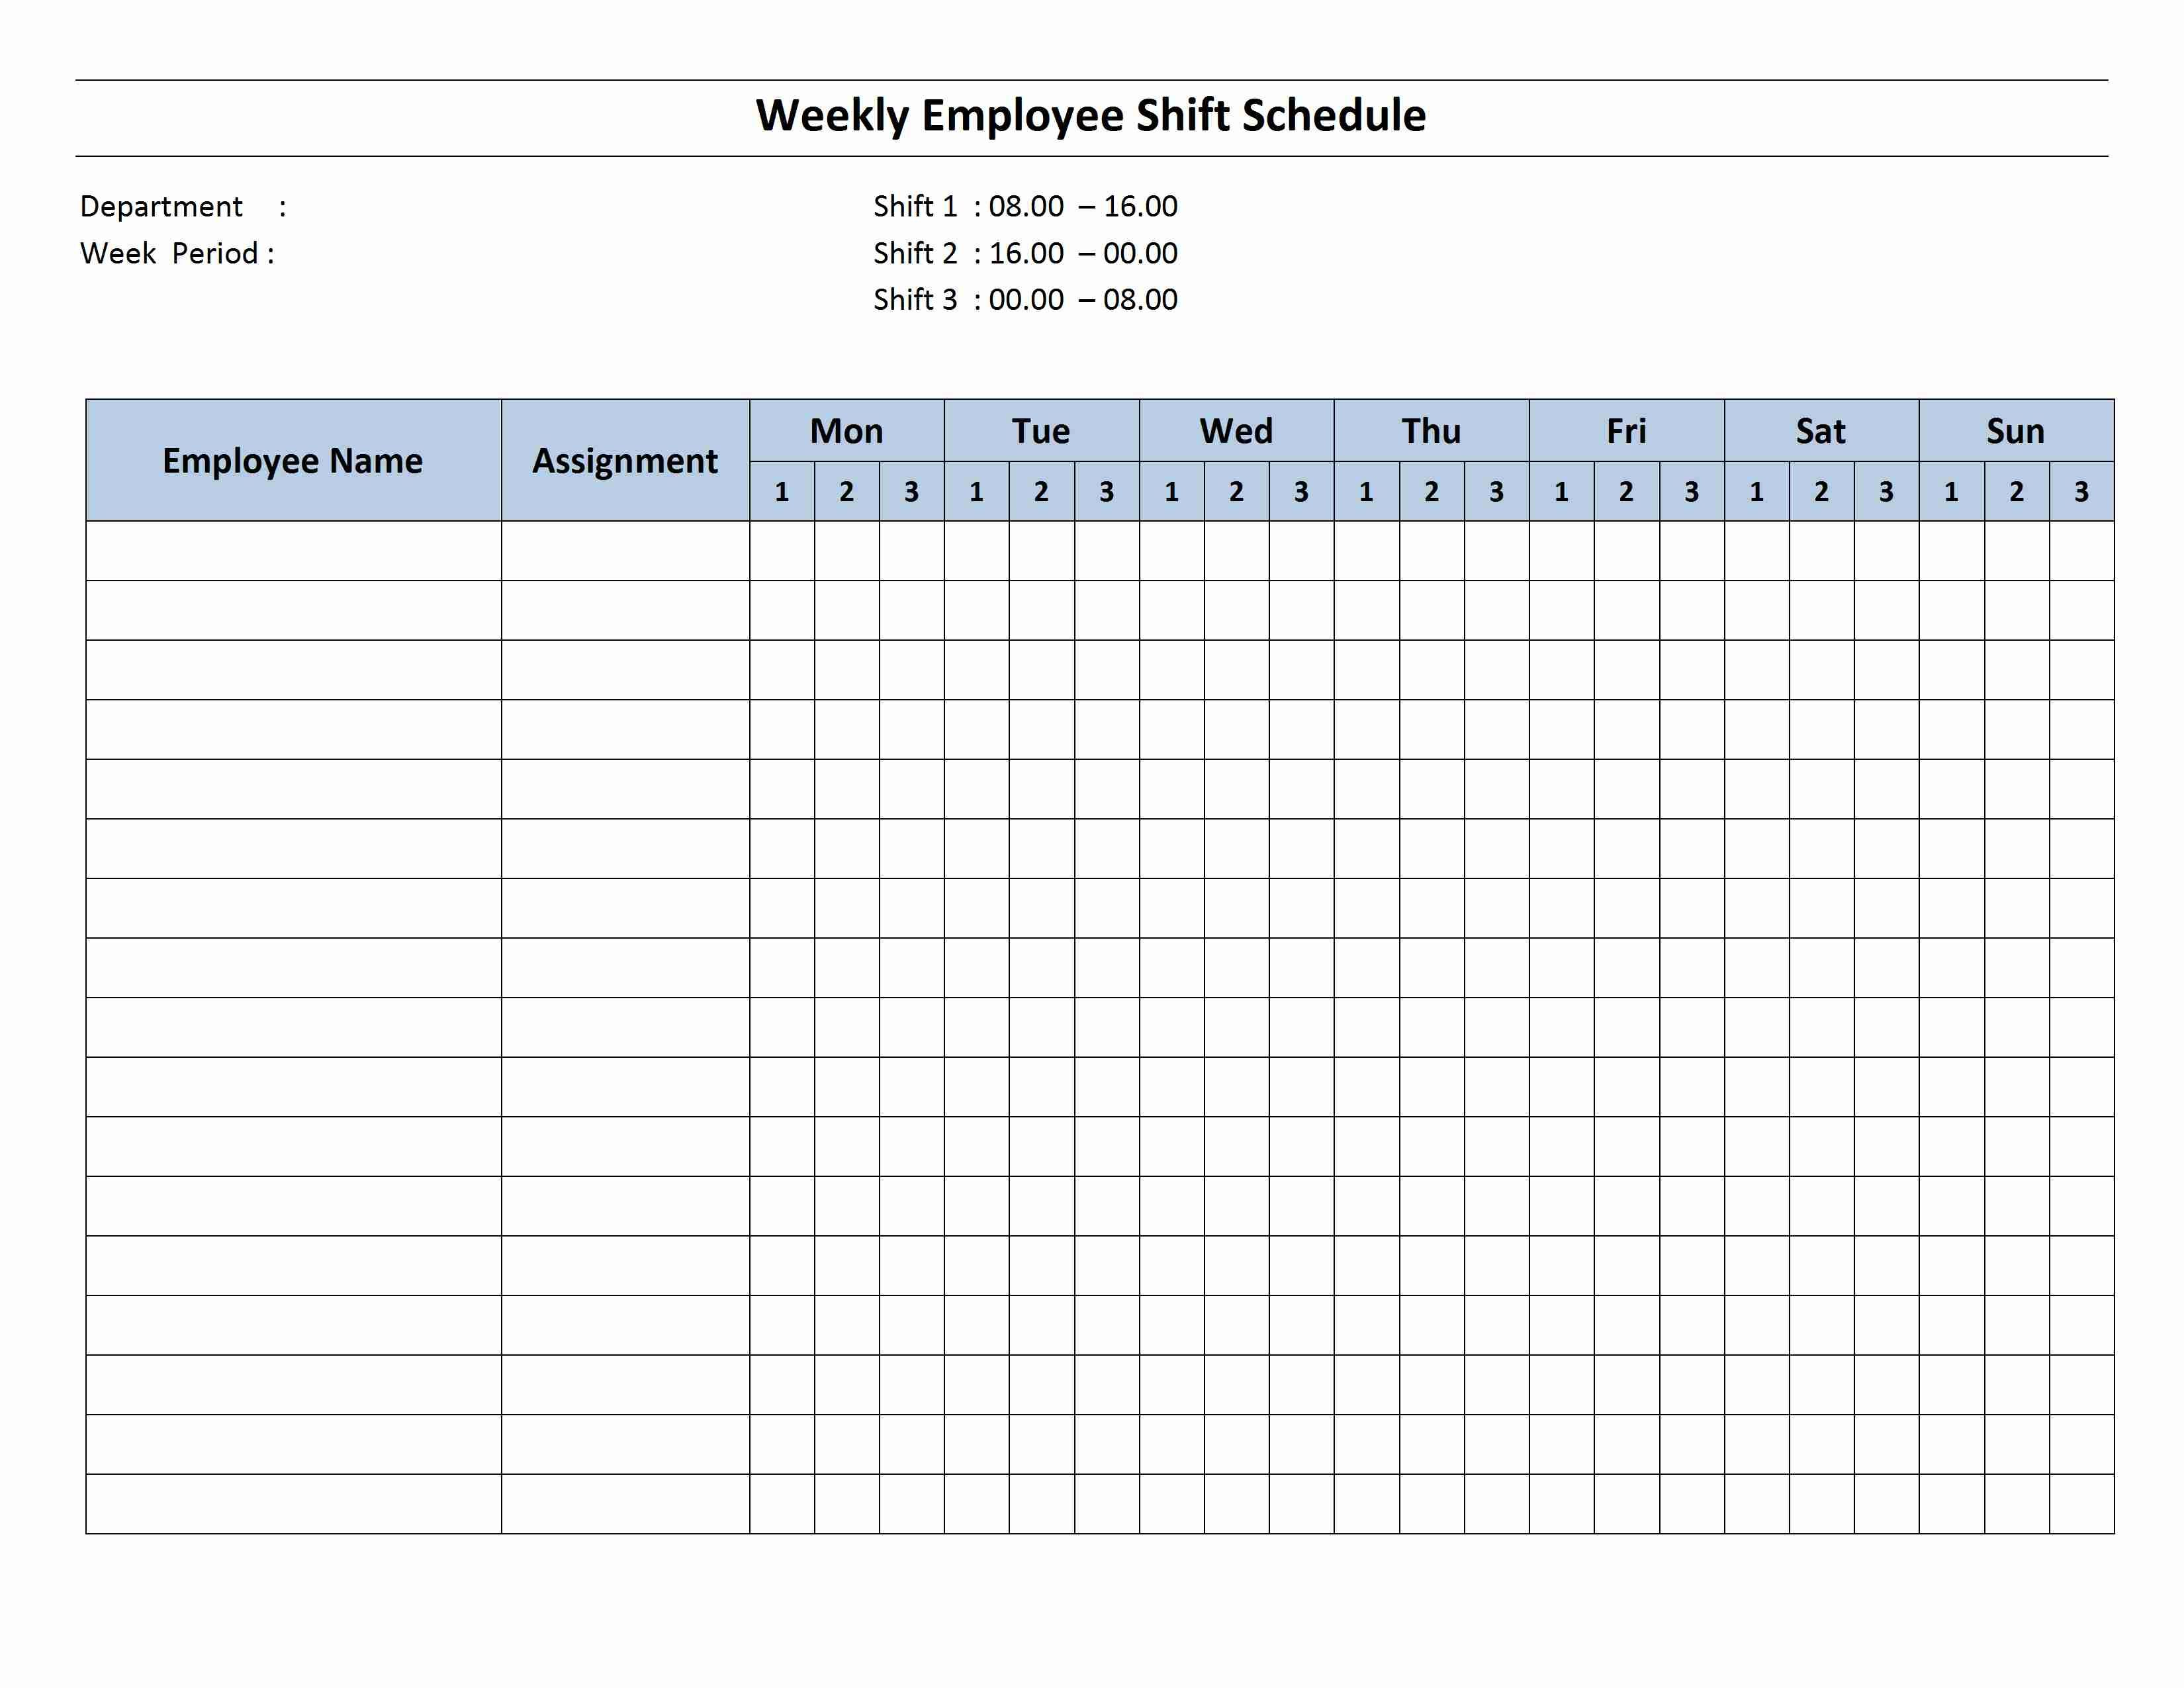 Free Monthly Work Schedule Template | Weekly Employee 8 Hour Shift - Free Printable Work Schedule Maker